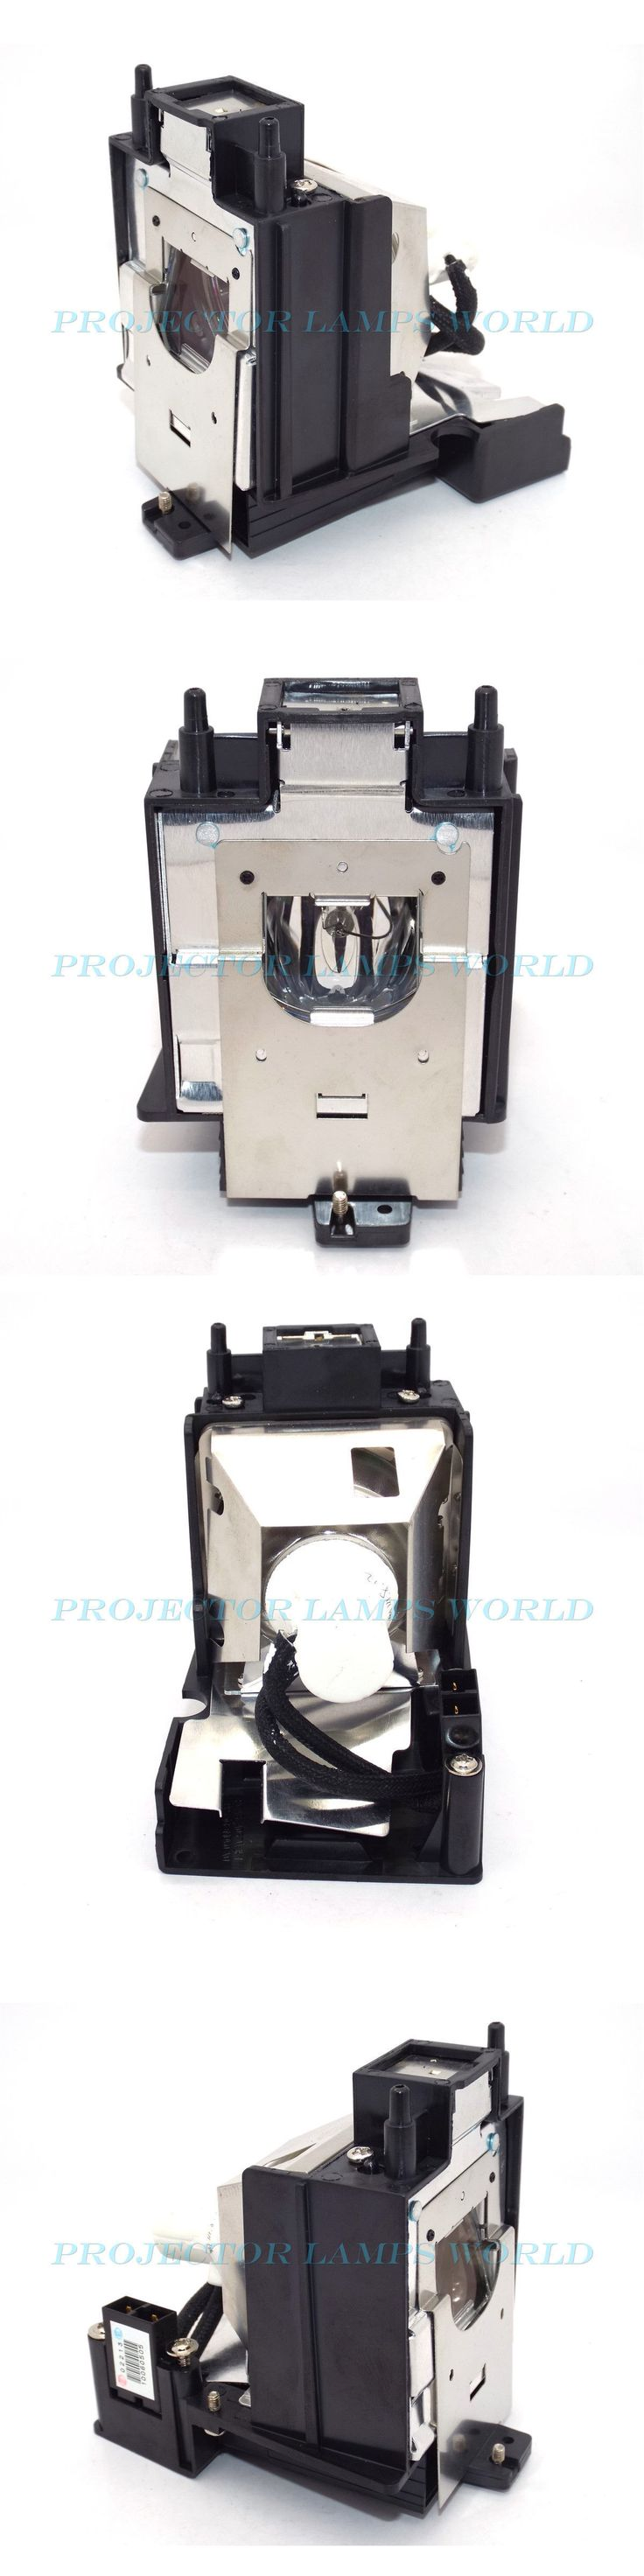 Projector Lamps and Components: Sharp Projector Replacement Lamp W Housing An-D400lp -> BUY IT NOW ONLY: $41.2 on eBay!